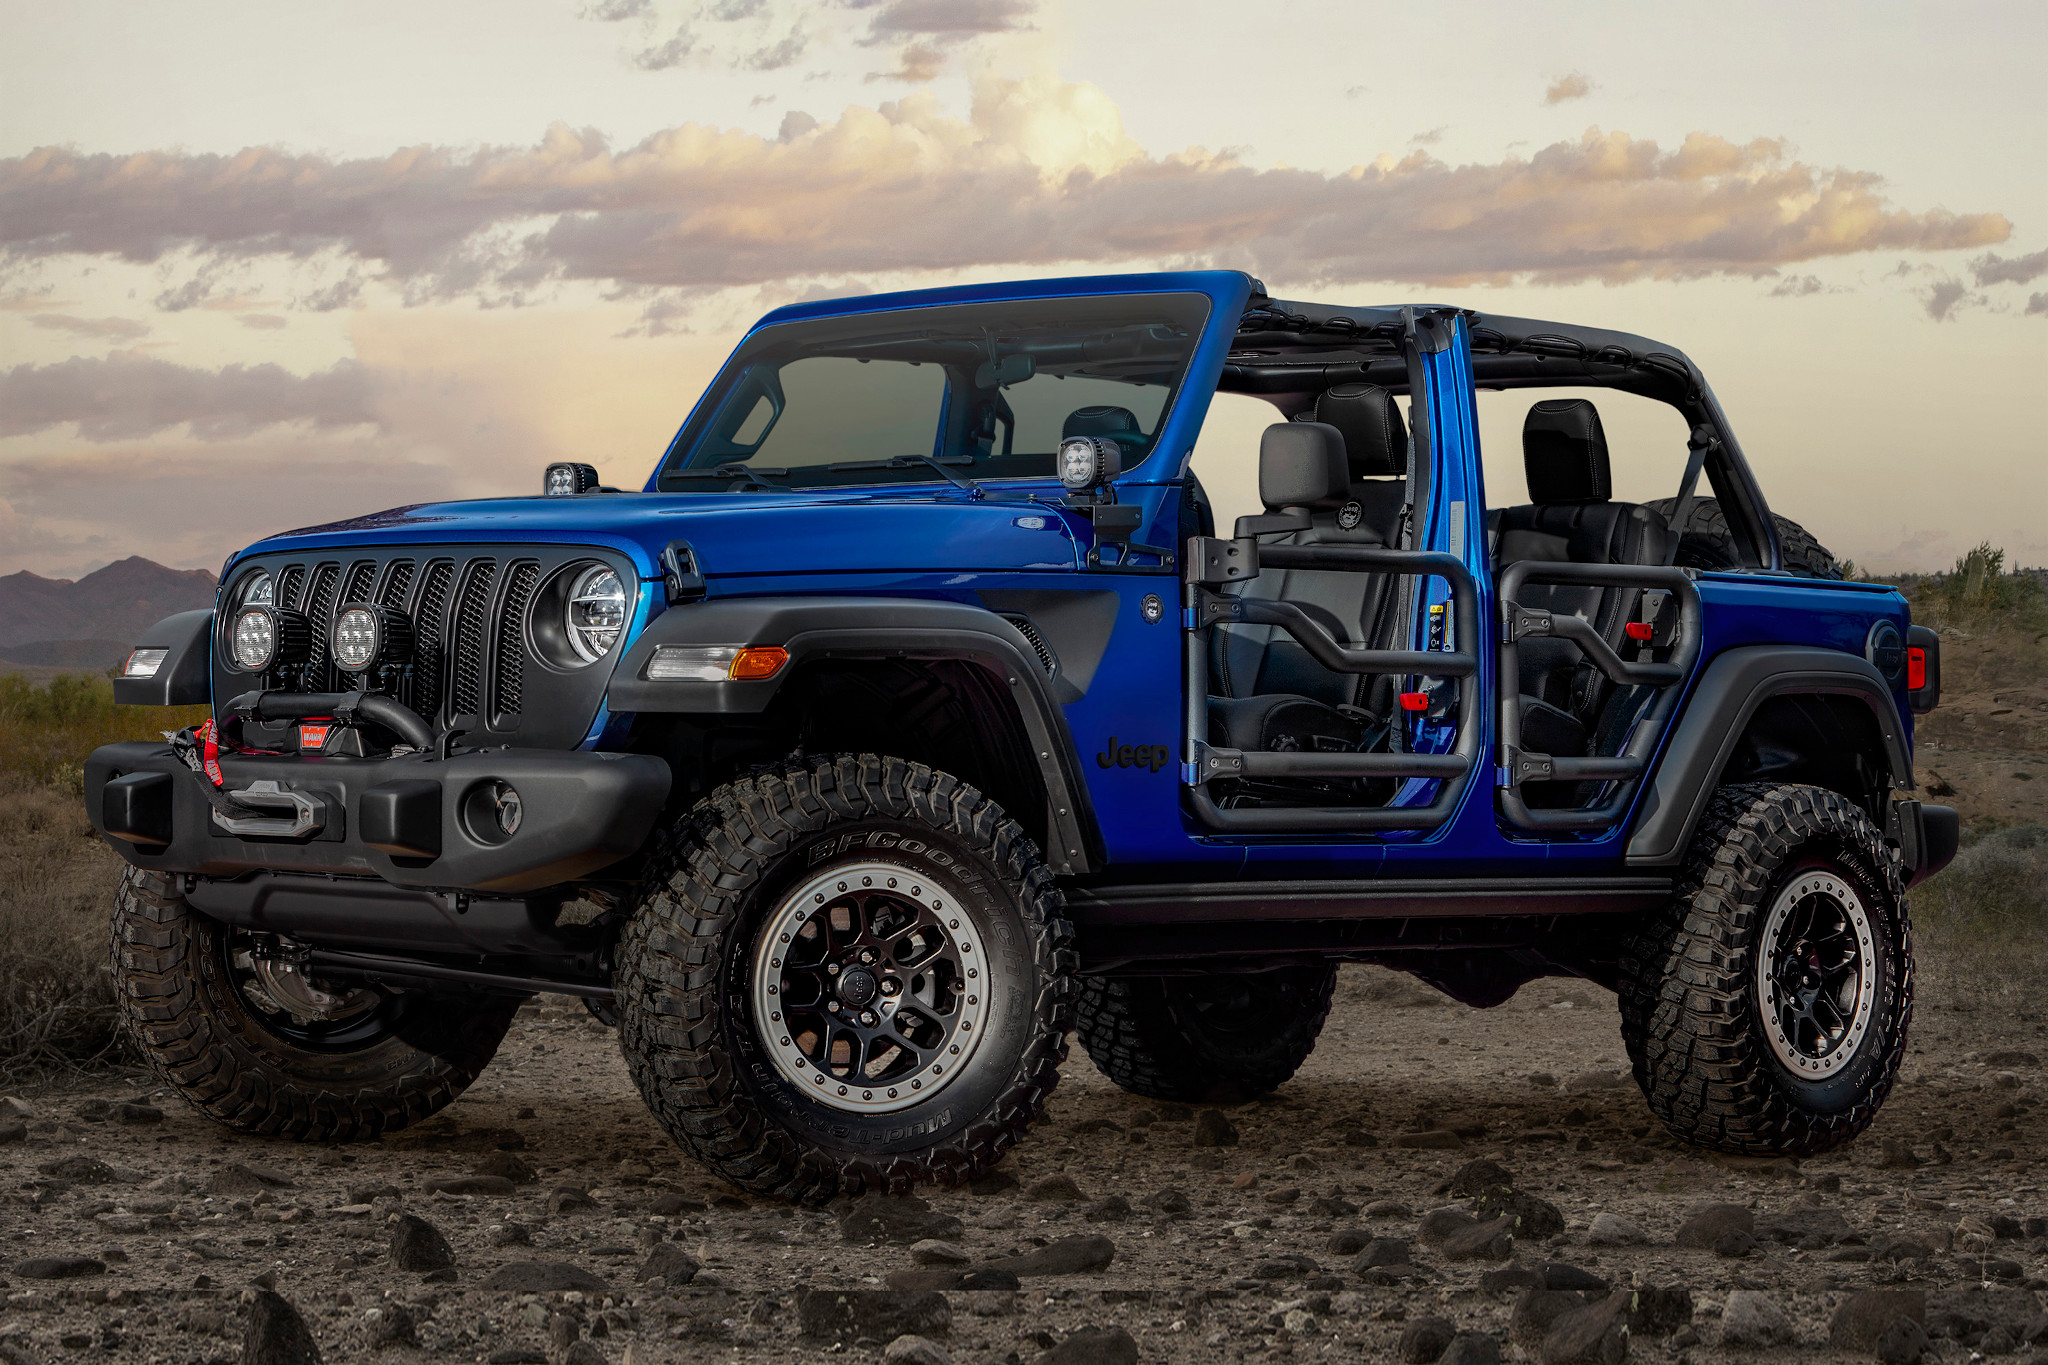 Jeep Wrangler JPP 20: Accessories Included